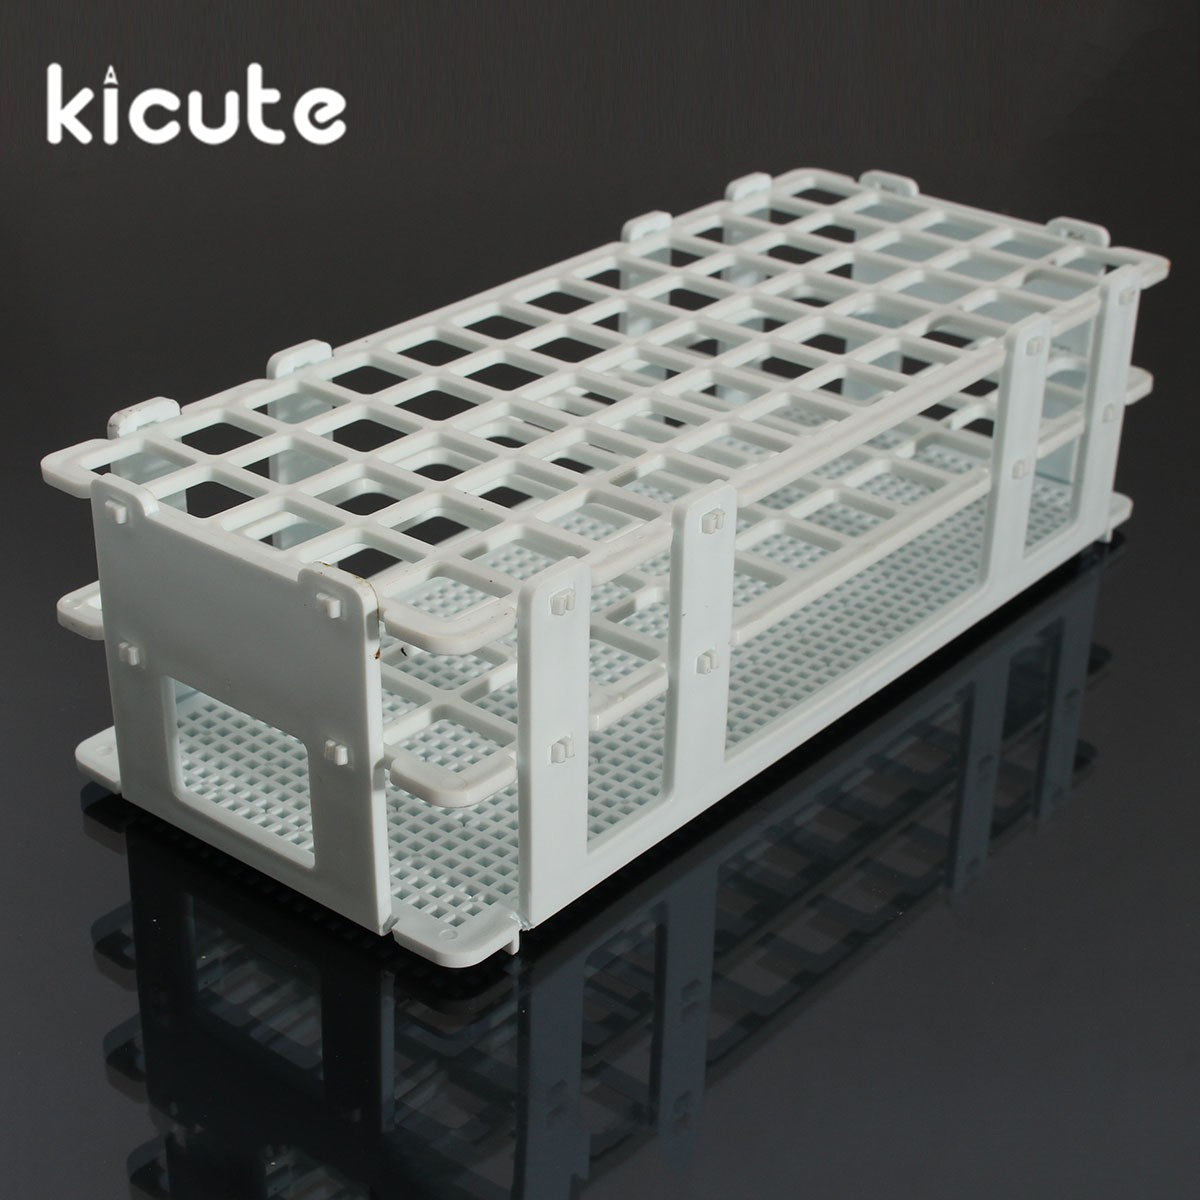 Kicute 60 Holes 16mm 3 Layers Plastic Test Tube Rack Holder Support Burette Stand Laboratory Test tube Stand Shelf Lab Supplies laboratory rack multi function physical test support stand base 100x100cm stainless steel